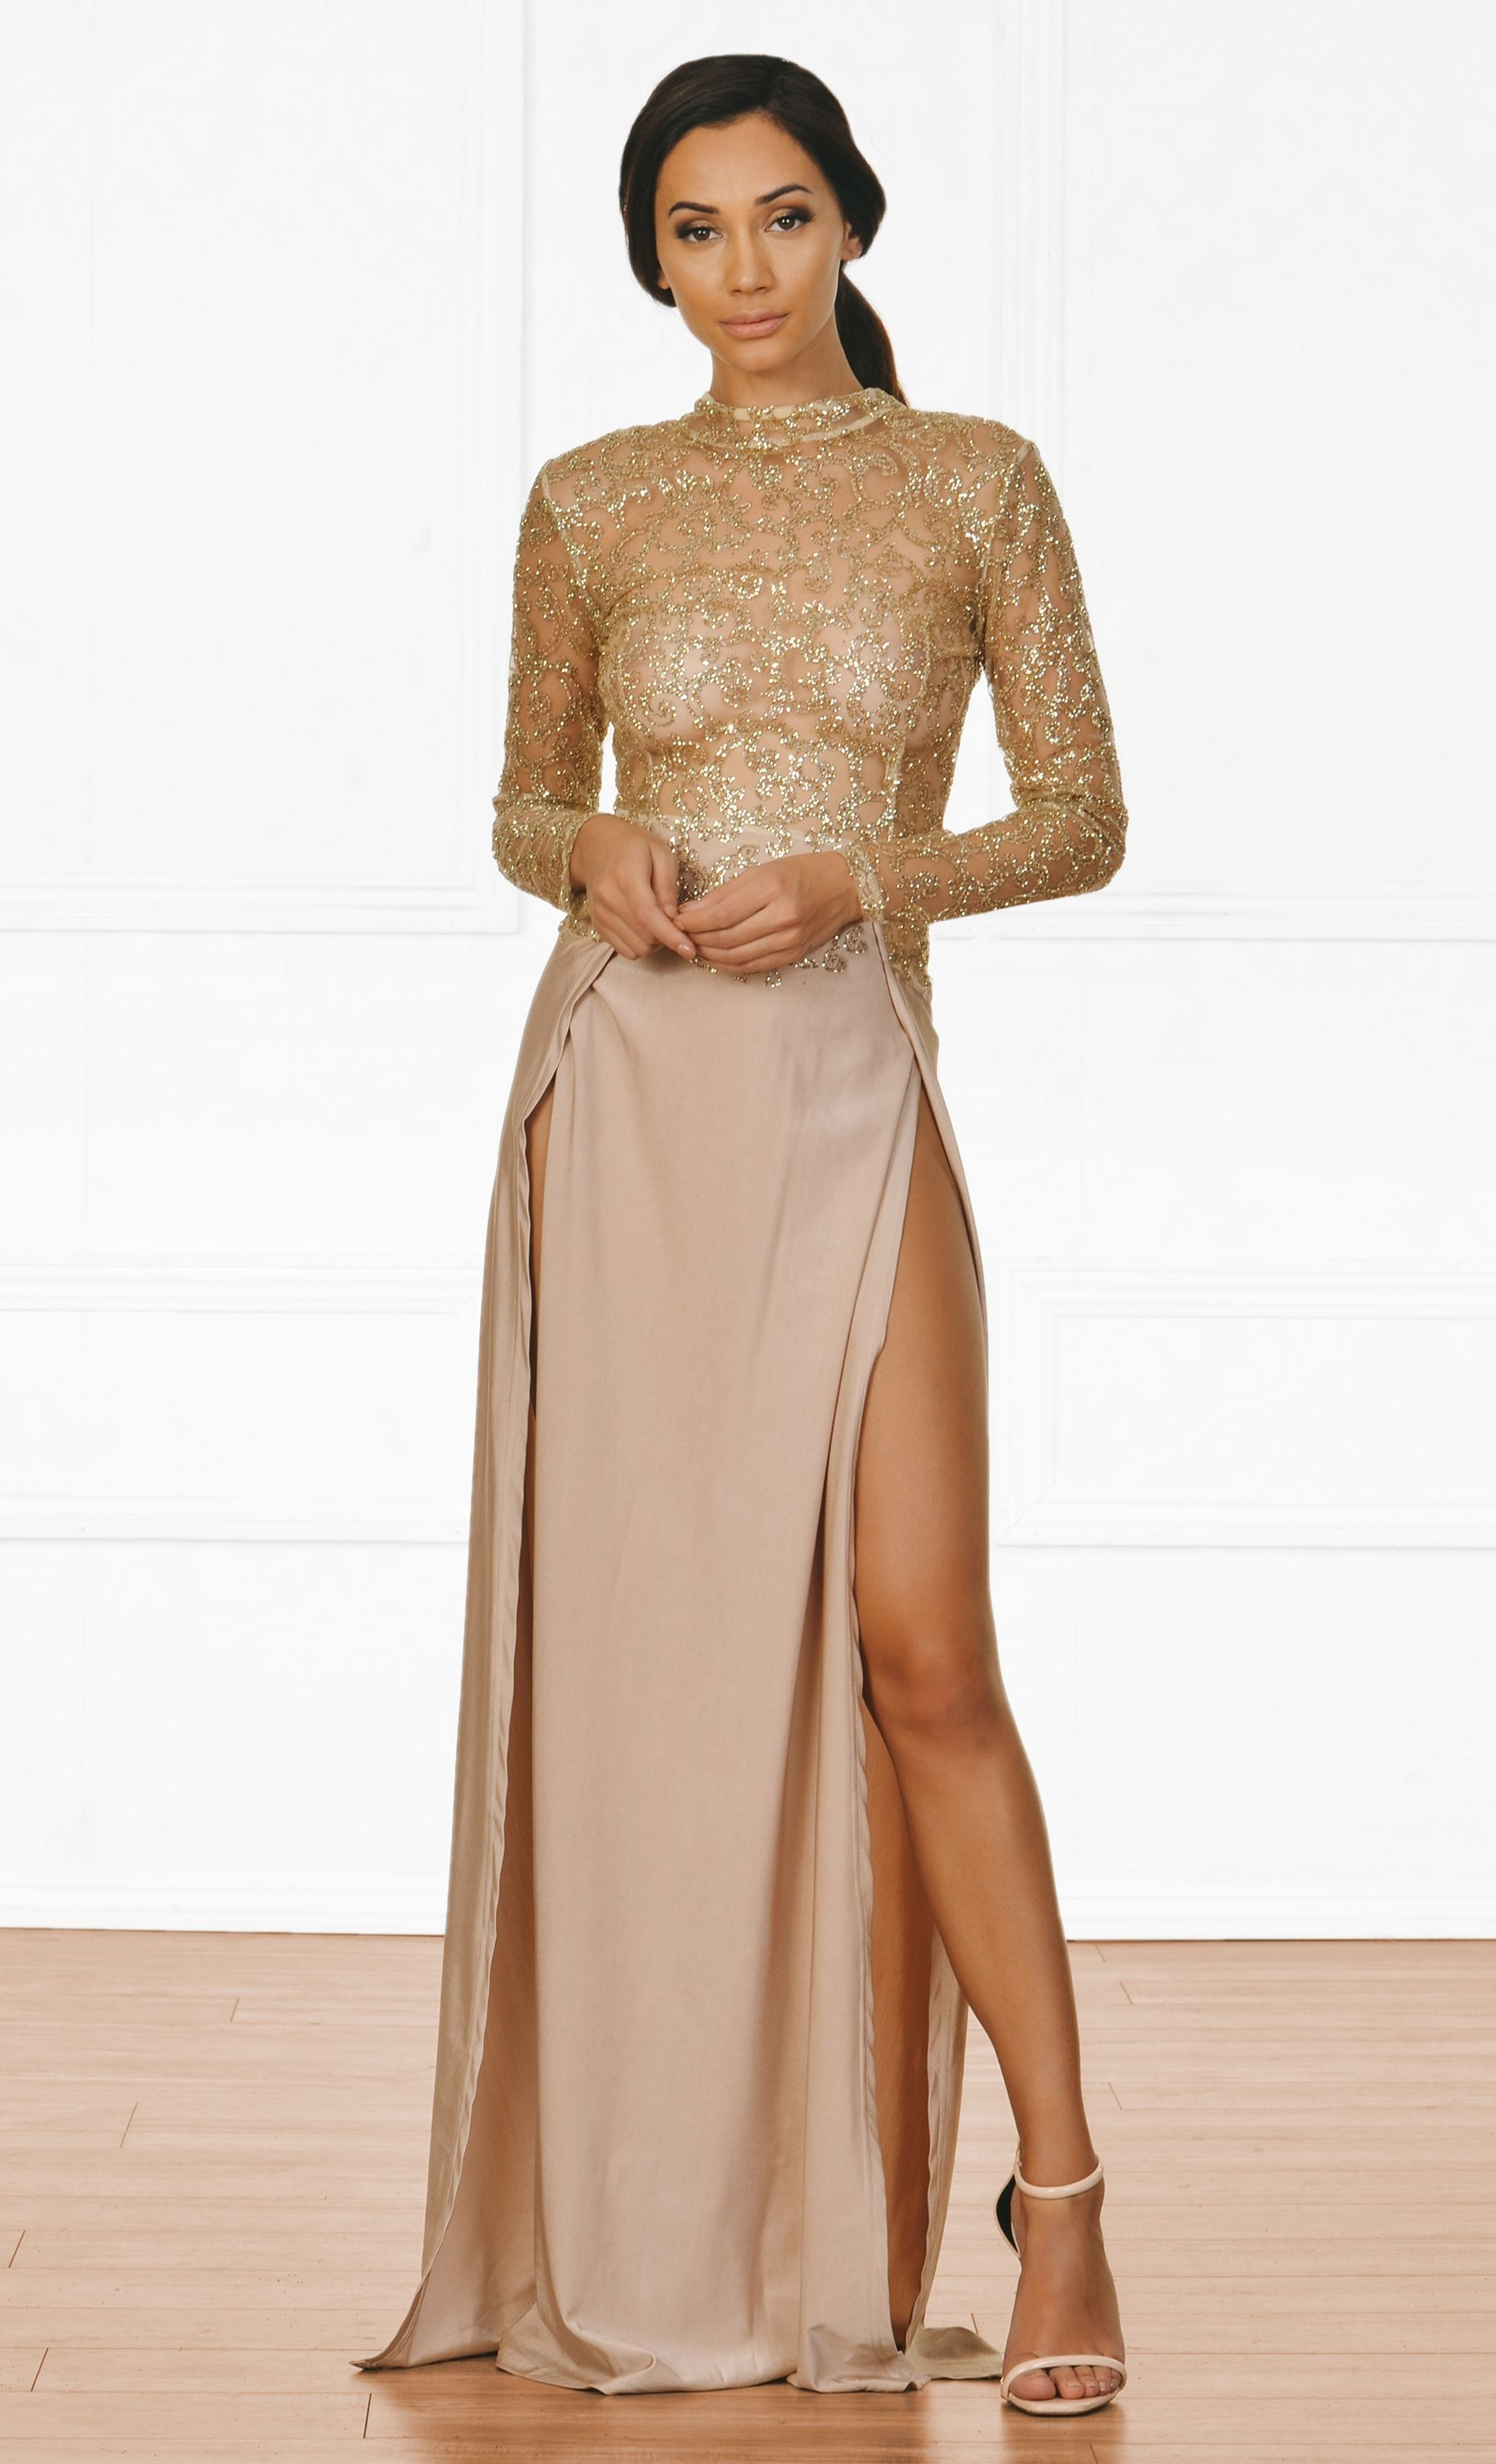 d1b2d5bf5a Indie XO High Drama Beige Gold Glitter Sheer Mesh Long Sleeve Mock Neck Cut  Out Back Double Slit Maxi Dress